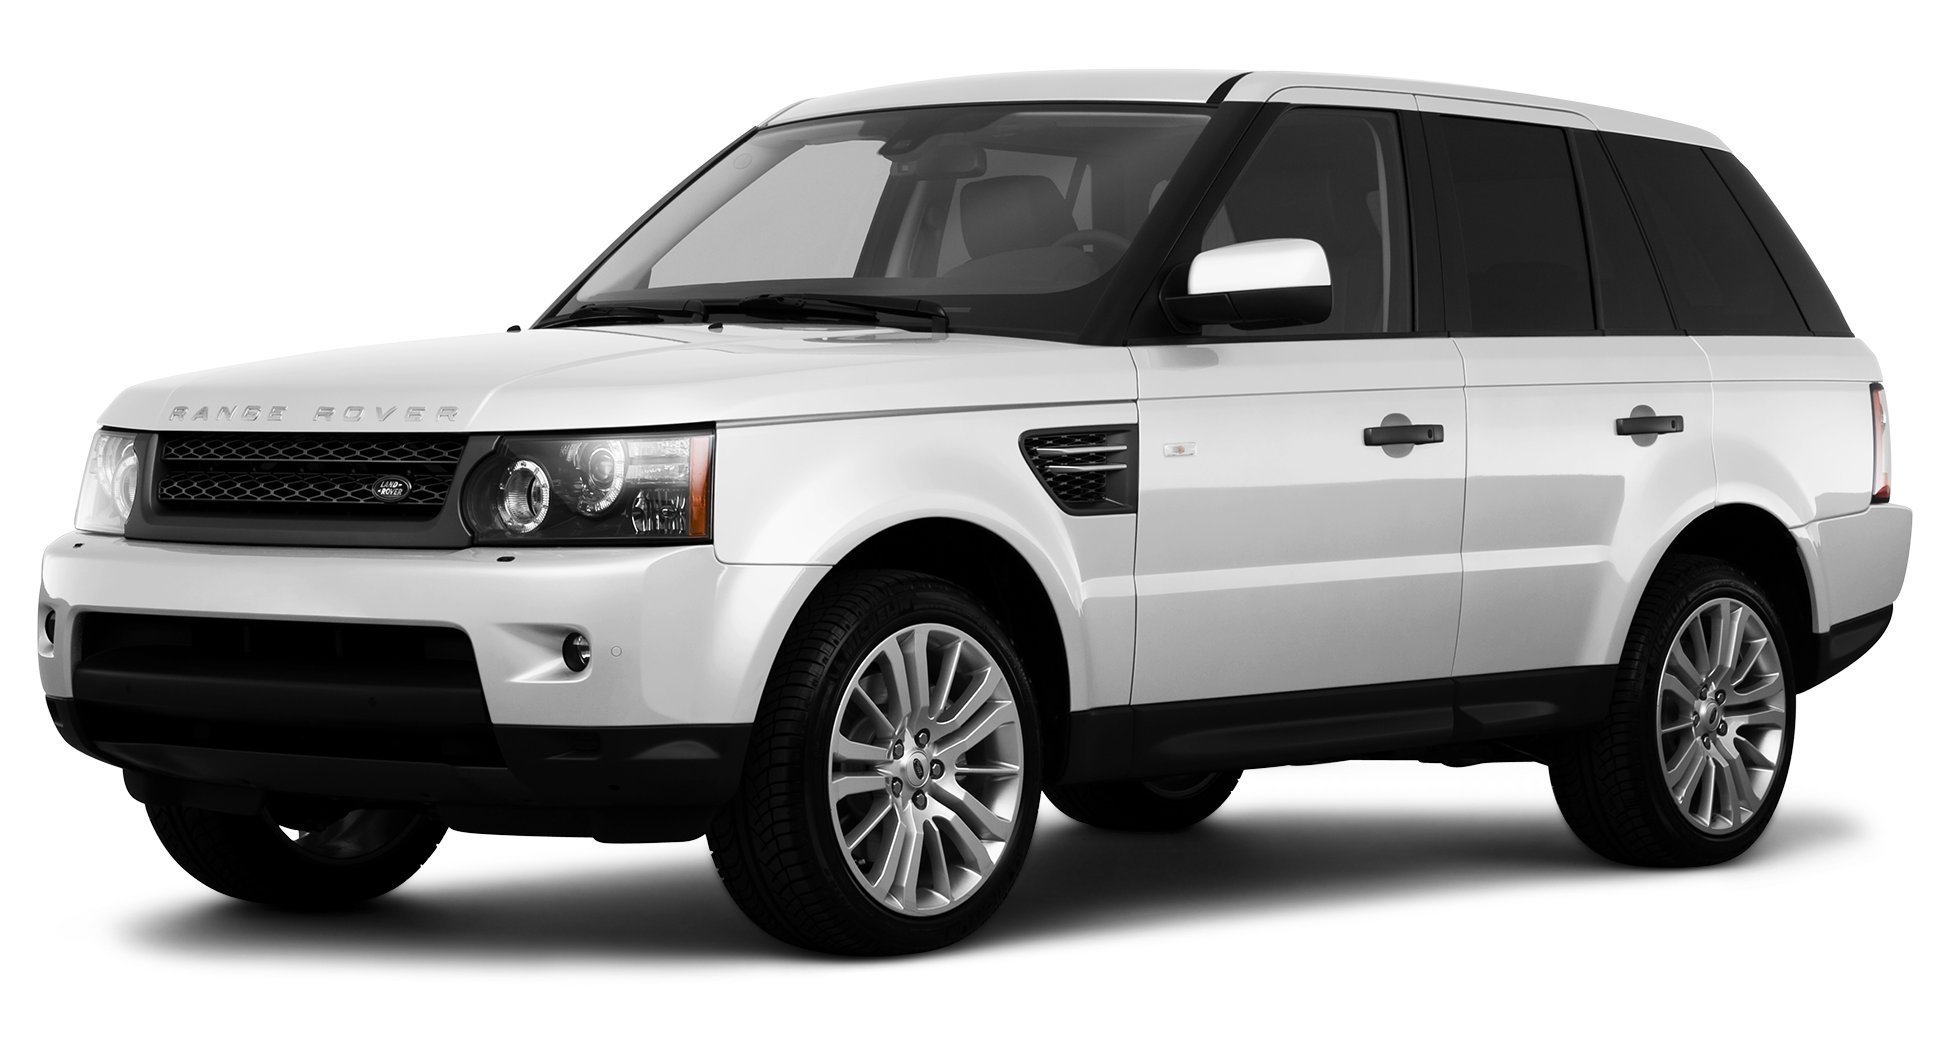 2010 land rover range rover sport reviews. Black Bedroom Furniture Sets. Home Design Ideas